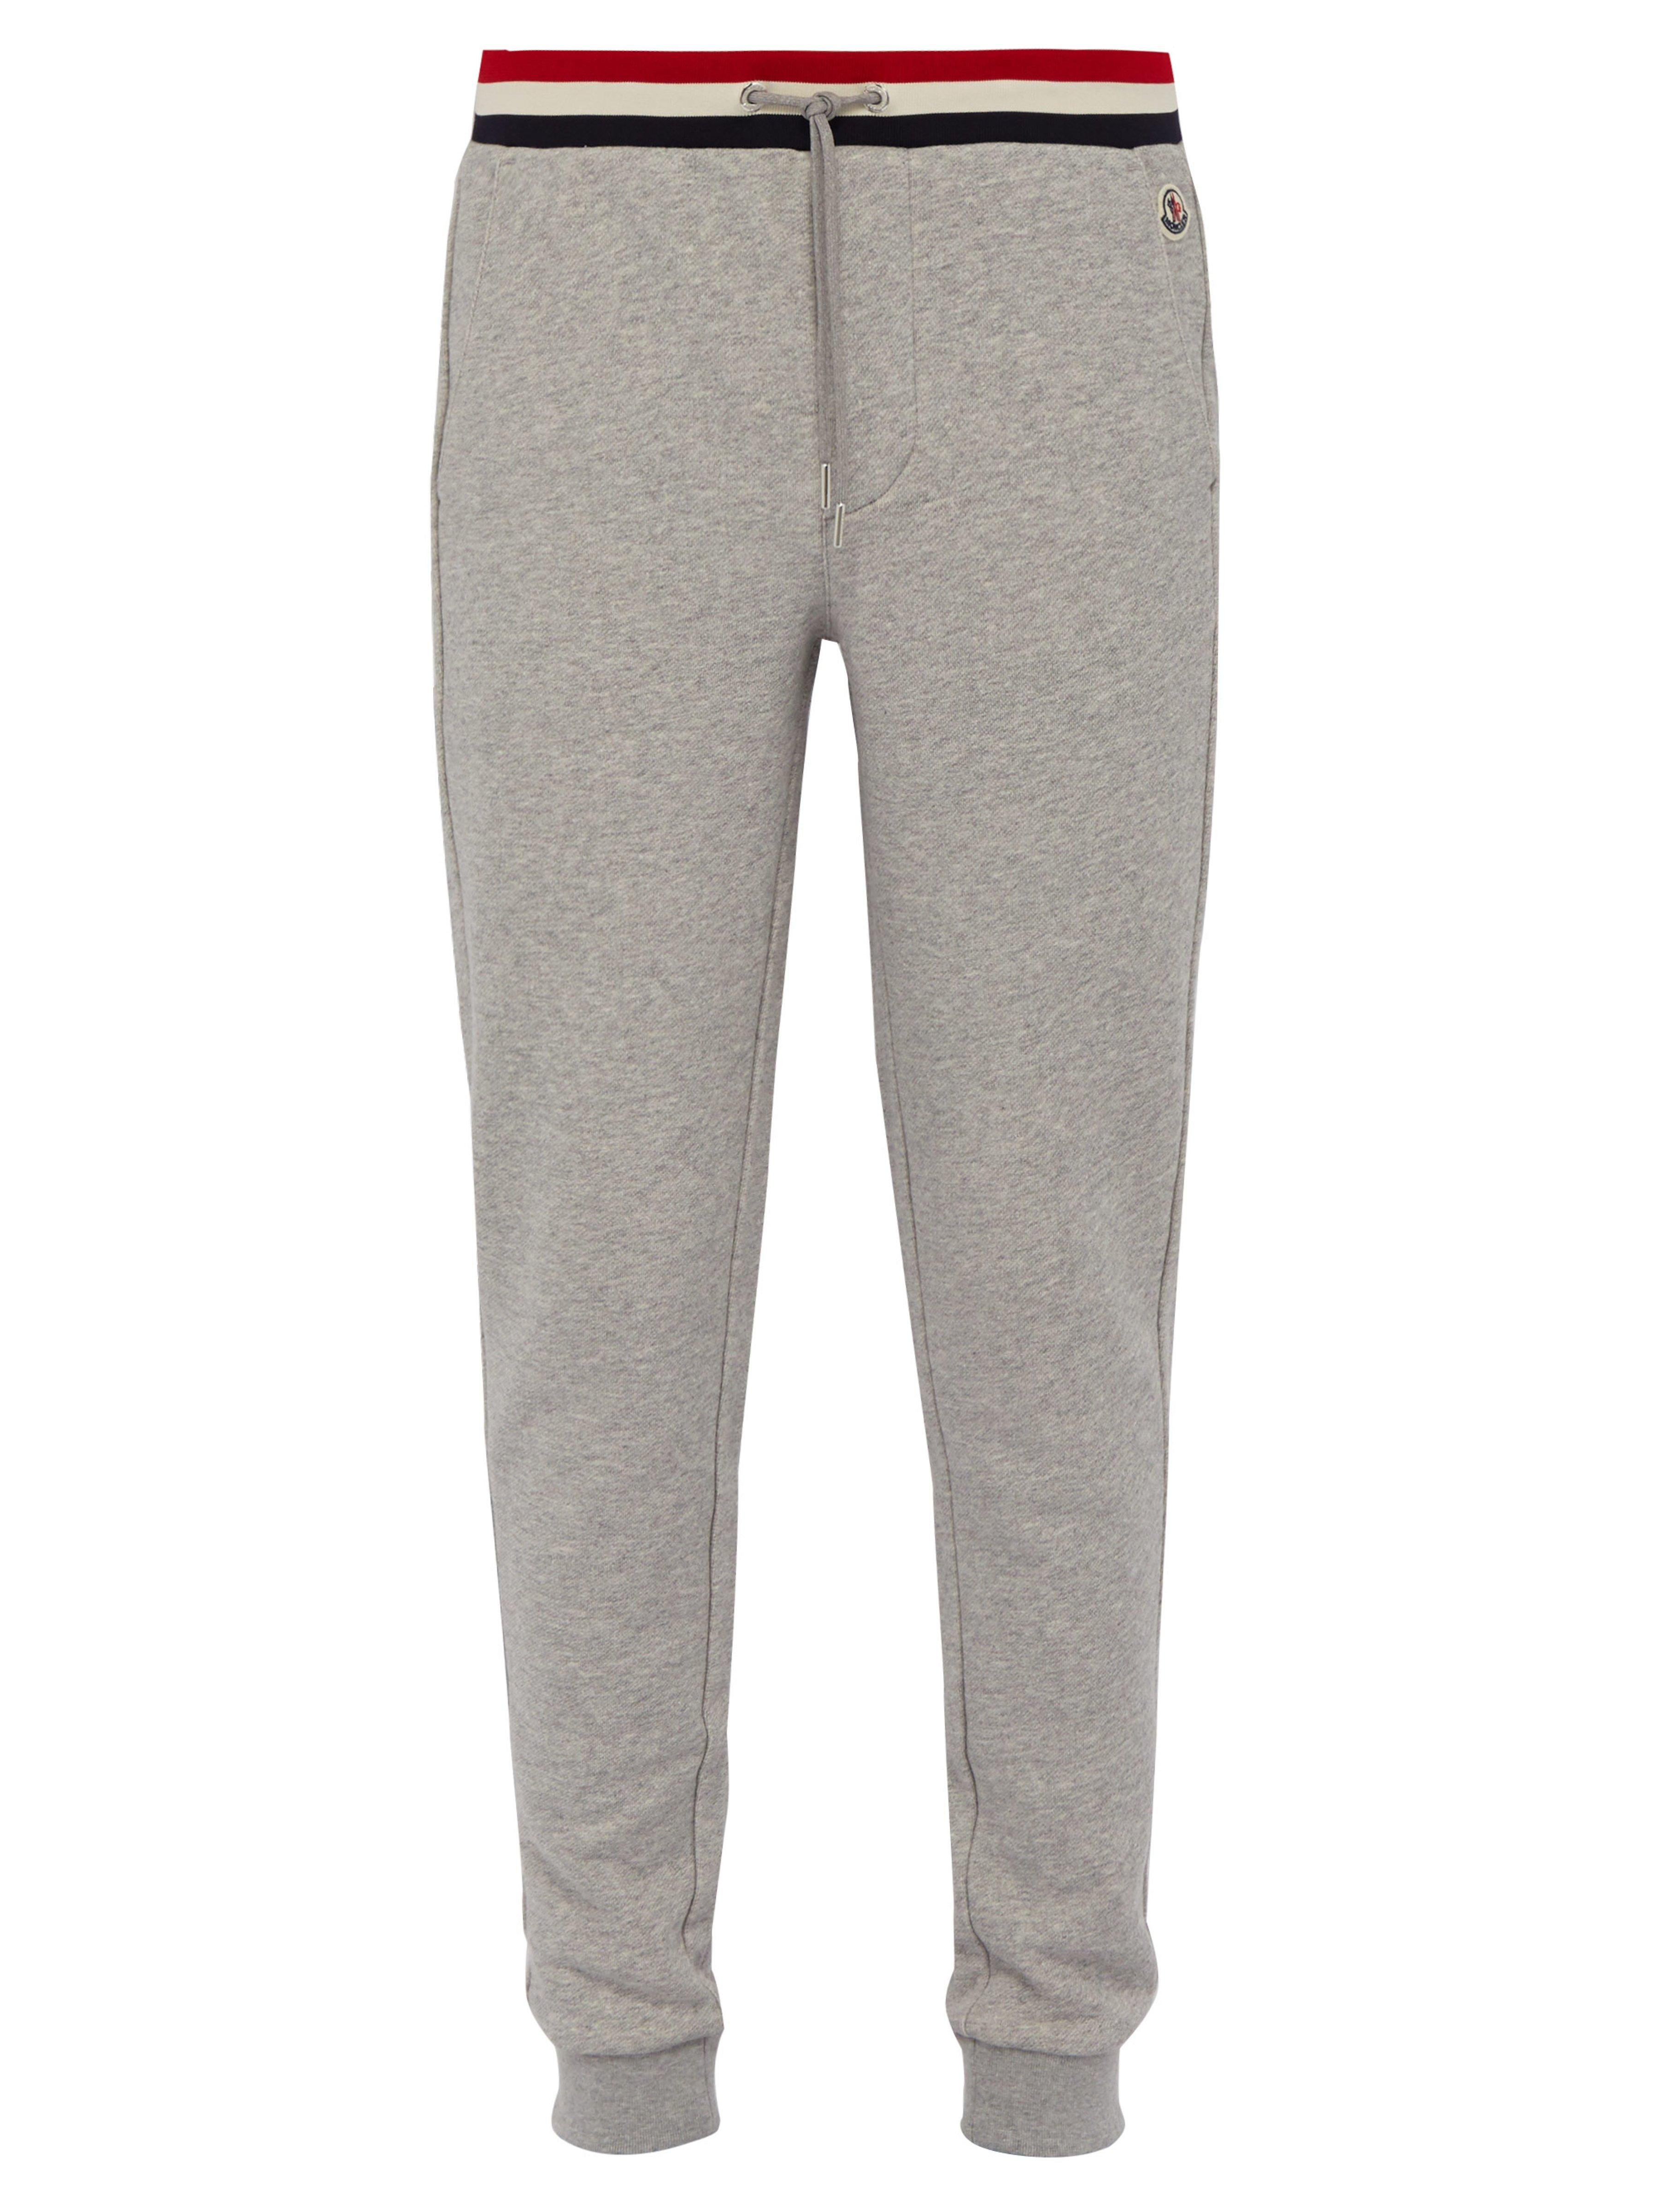 a51e8aa5a Moncler Slim Leg Loopback Cotton Track Pants in Gray for Men - Lyst